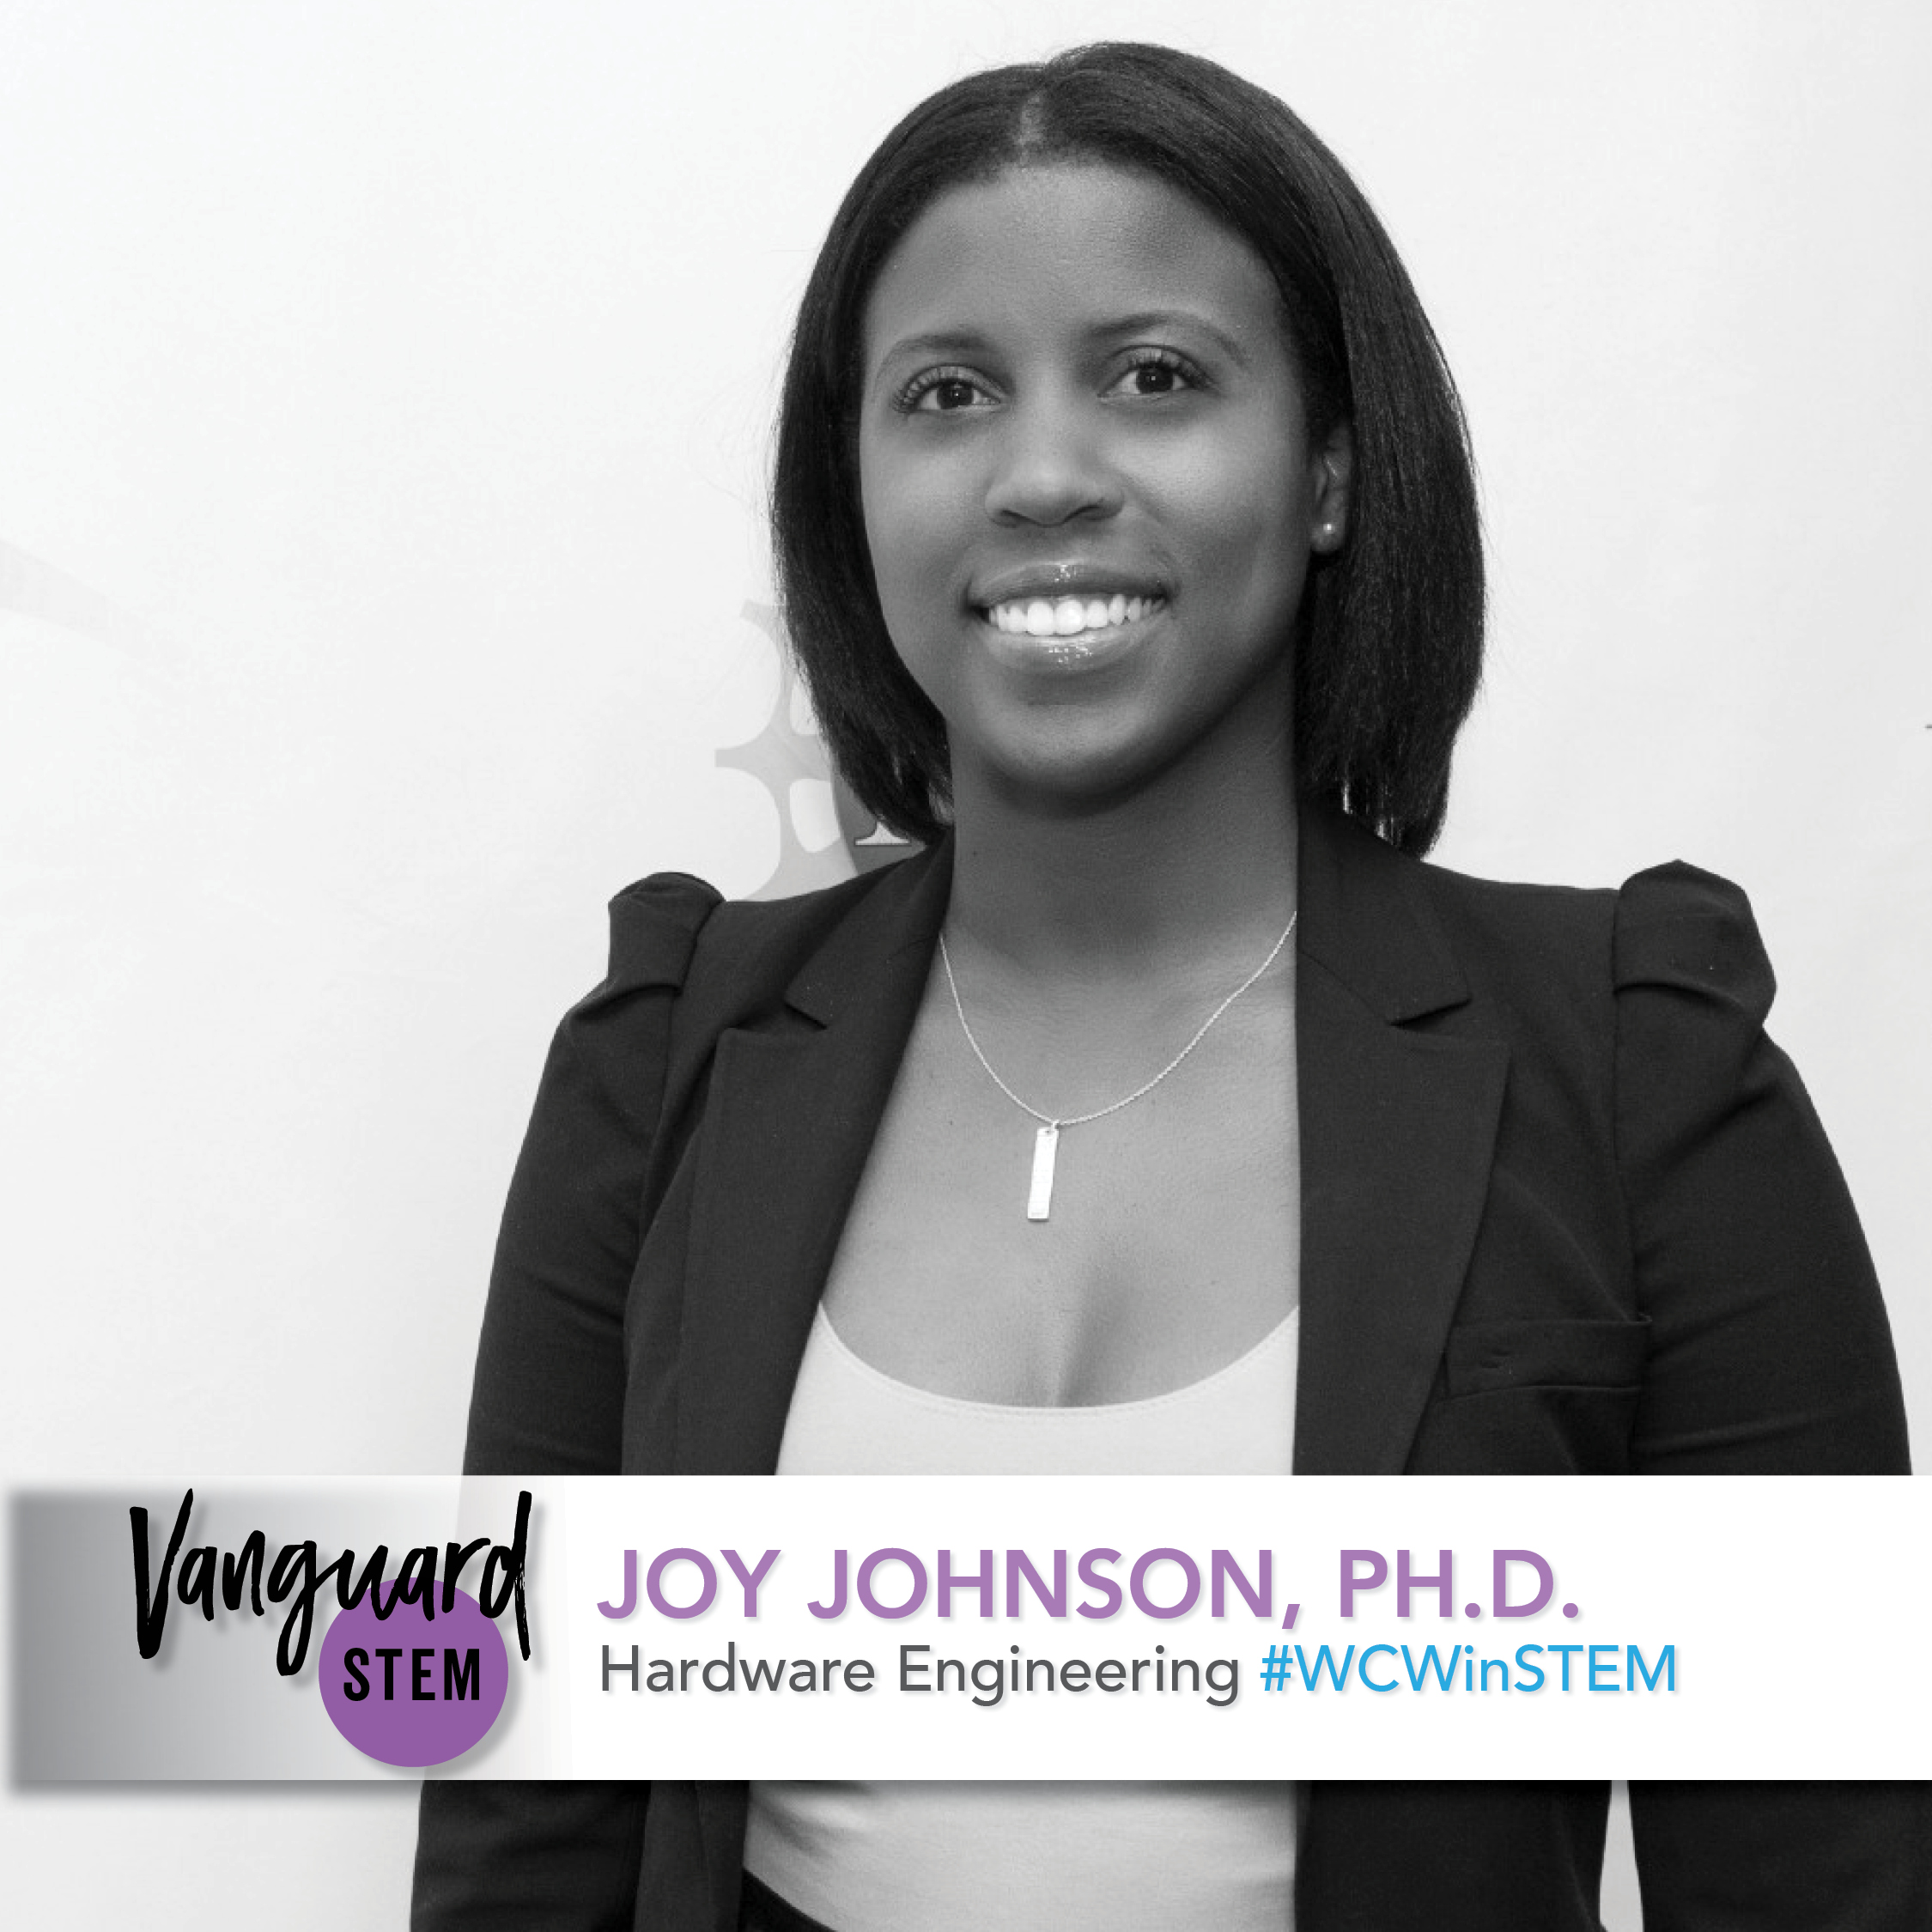 Joy Johnson, Ph.D.